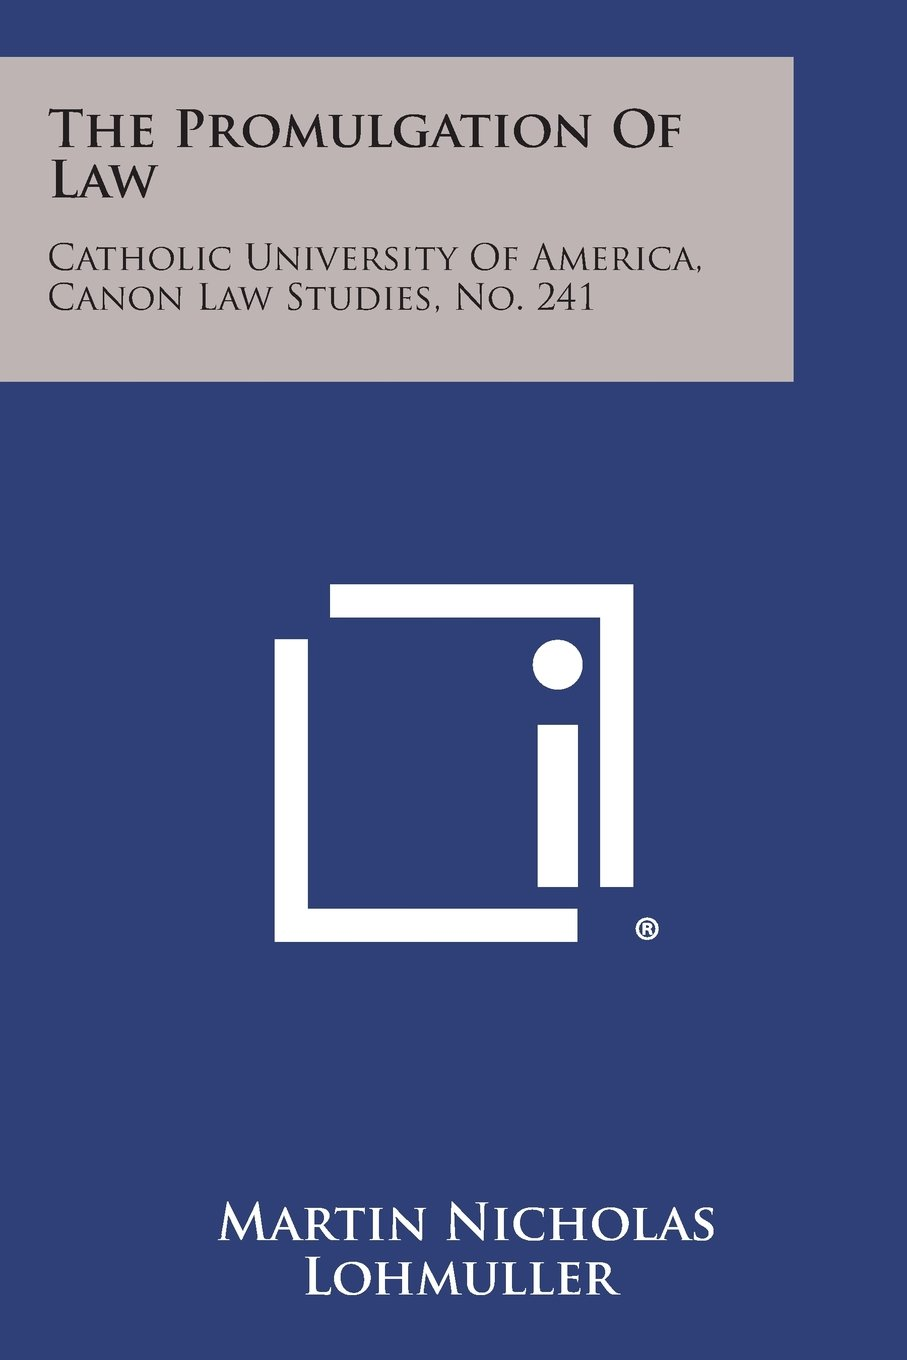 Download The Promulgation Of Law: Catholic University Of America, Canon Law Studies, No. 241 pdf